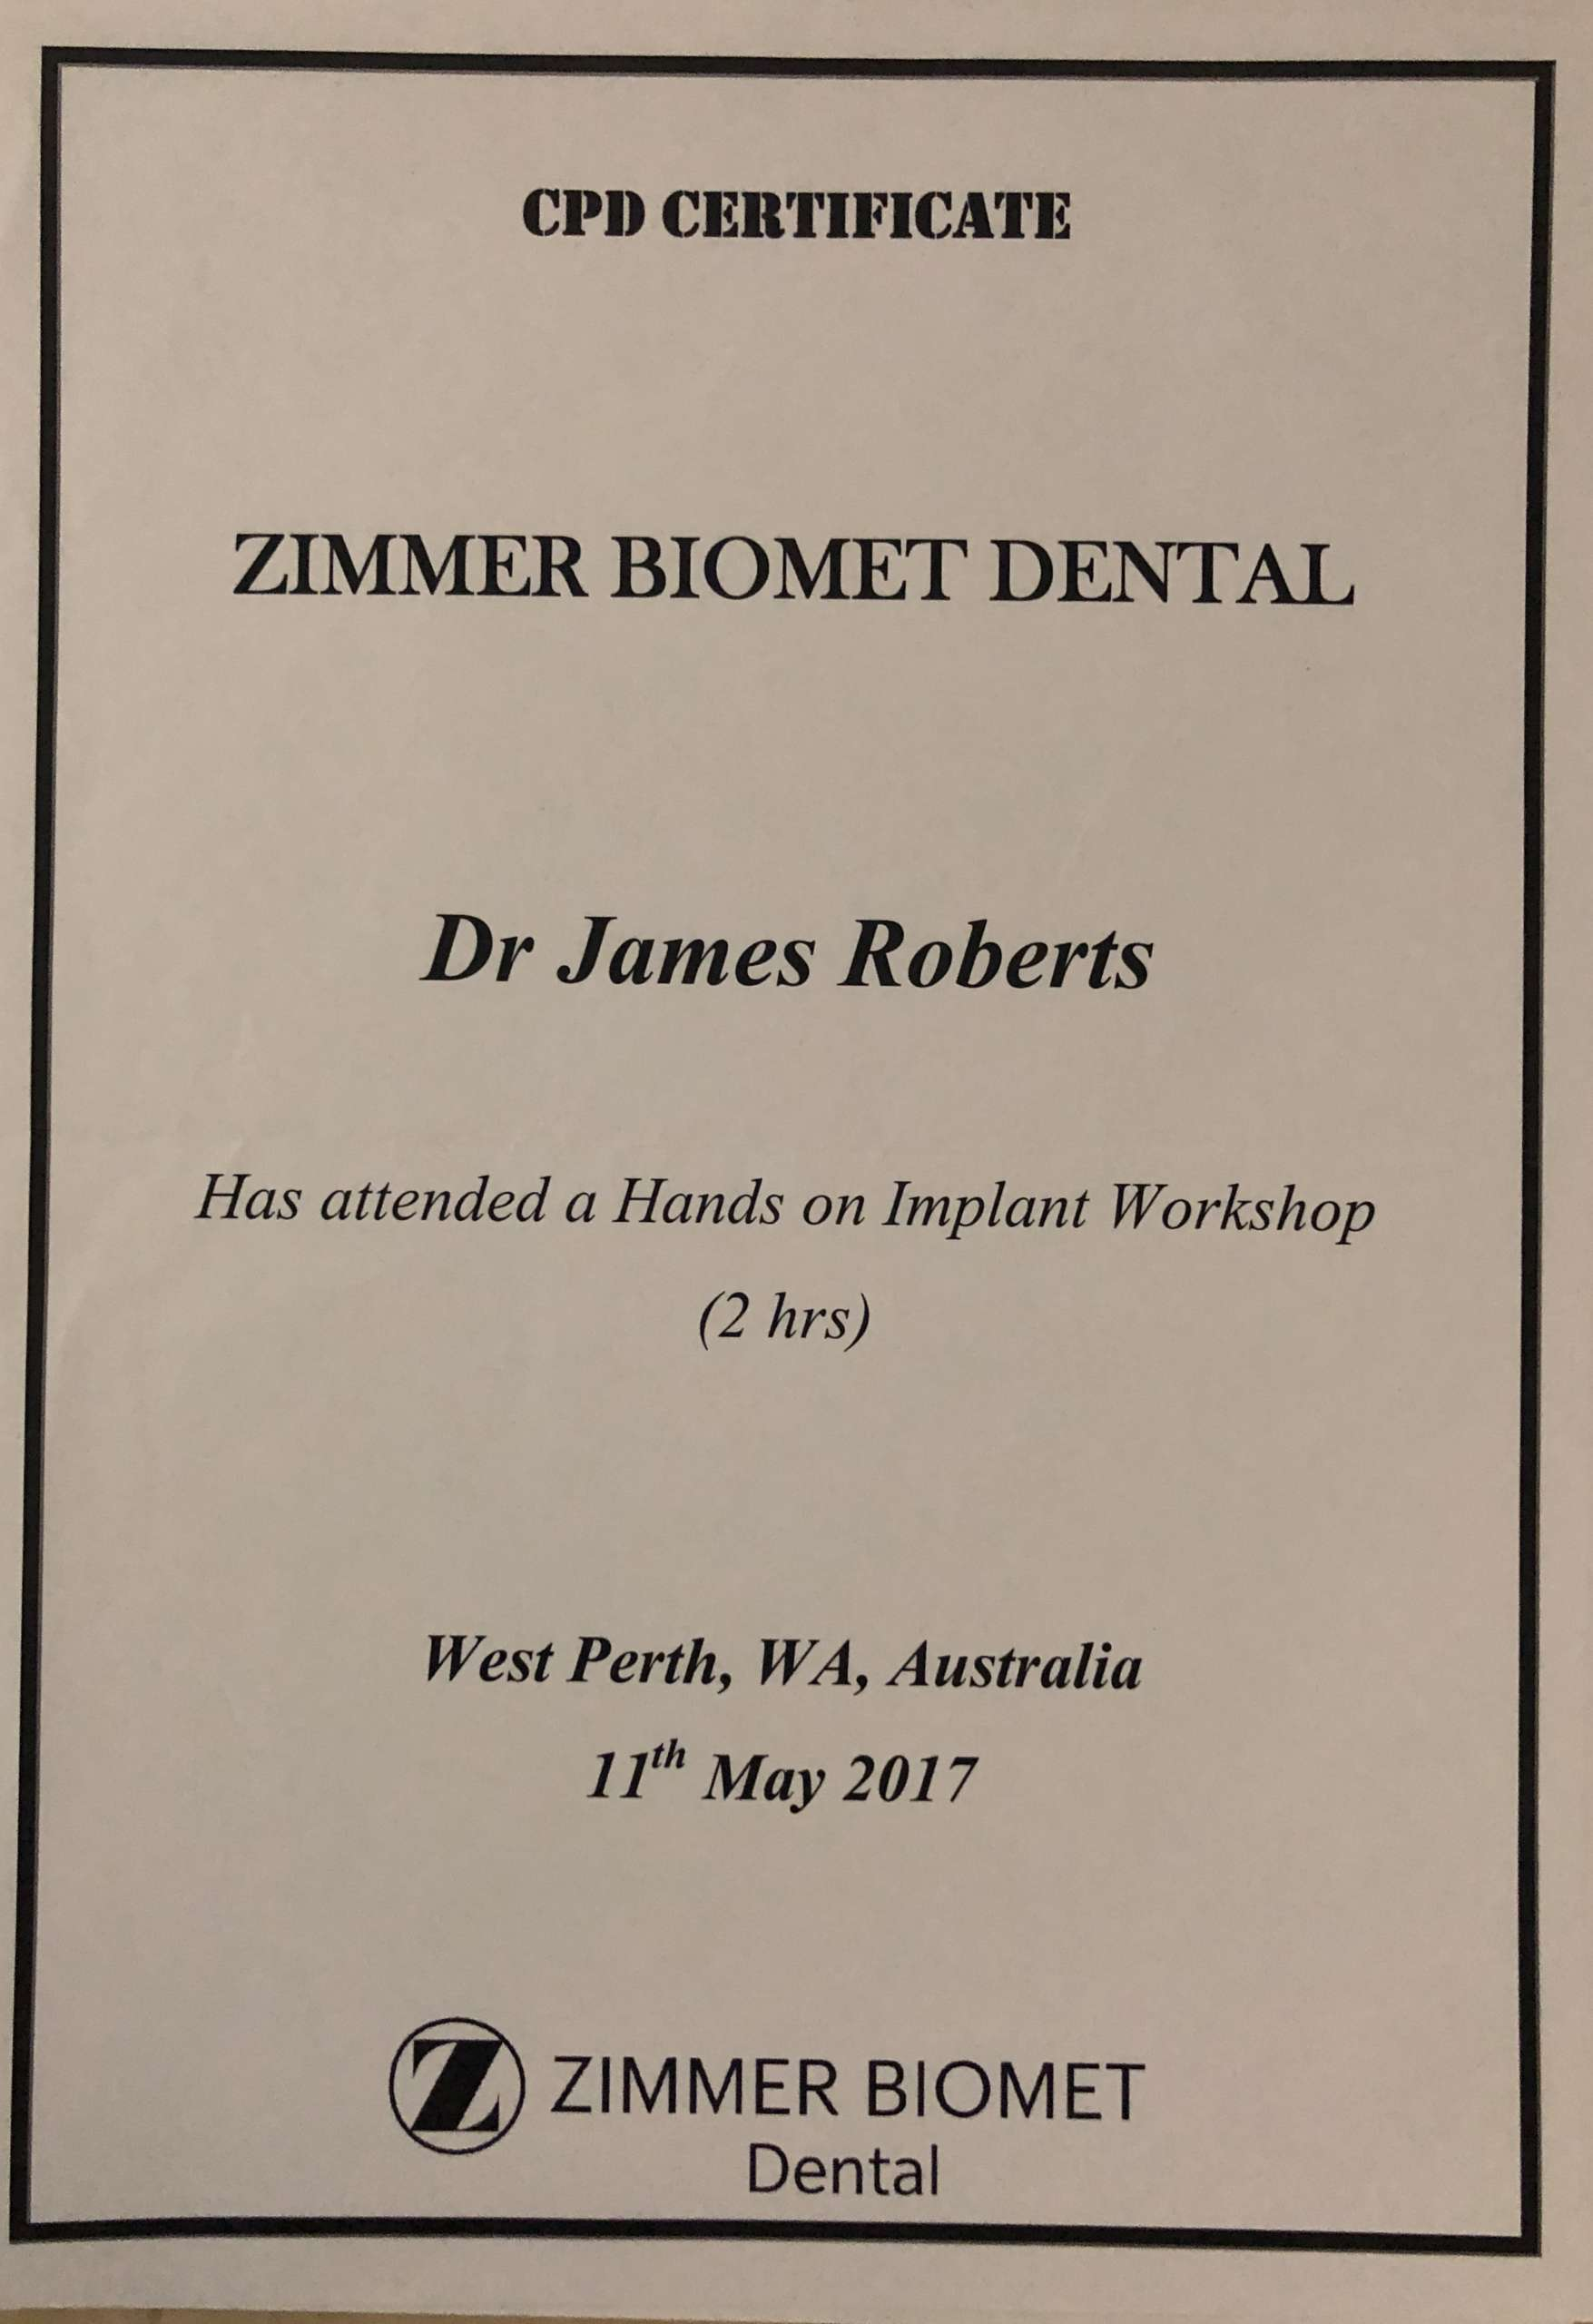 May 2017 – Attended the Hands-on Implant Workshop in West Perth held by Zimmer Biomet Dental